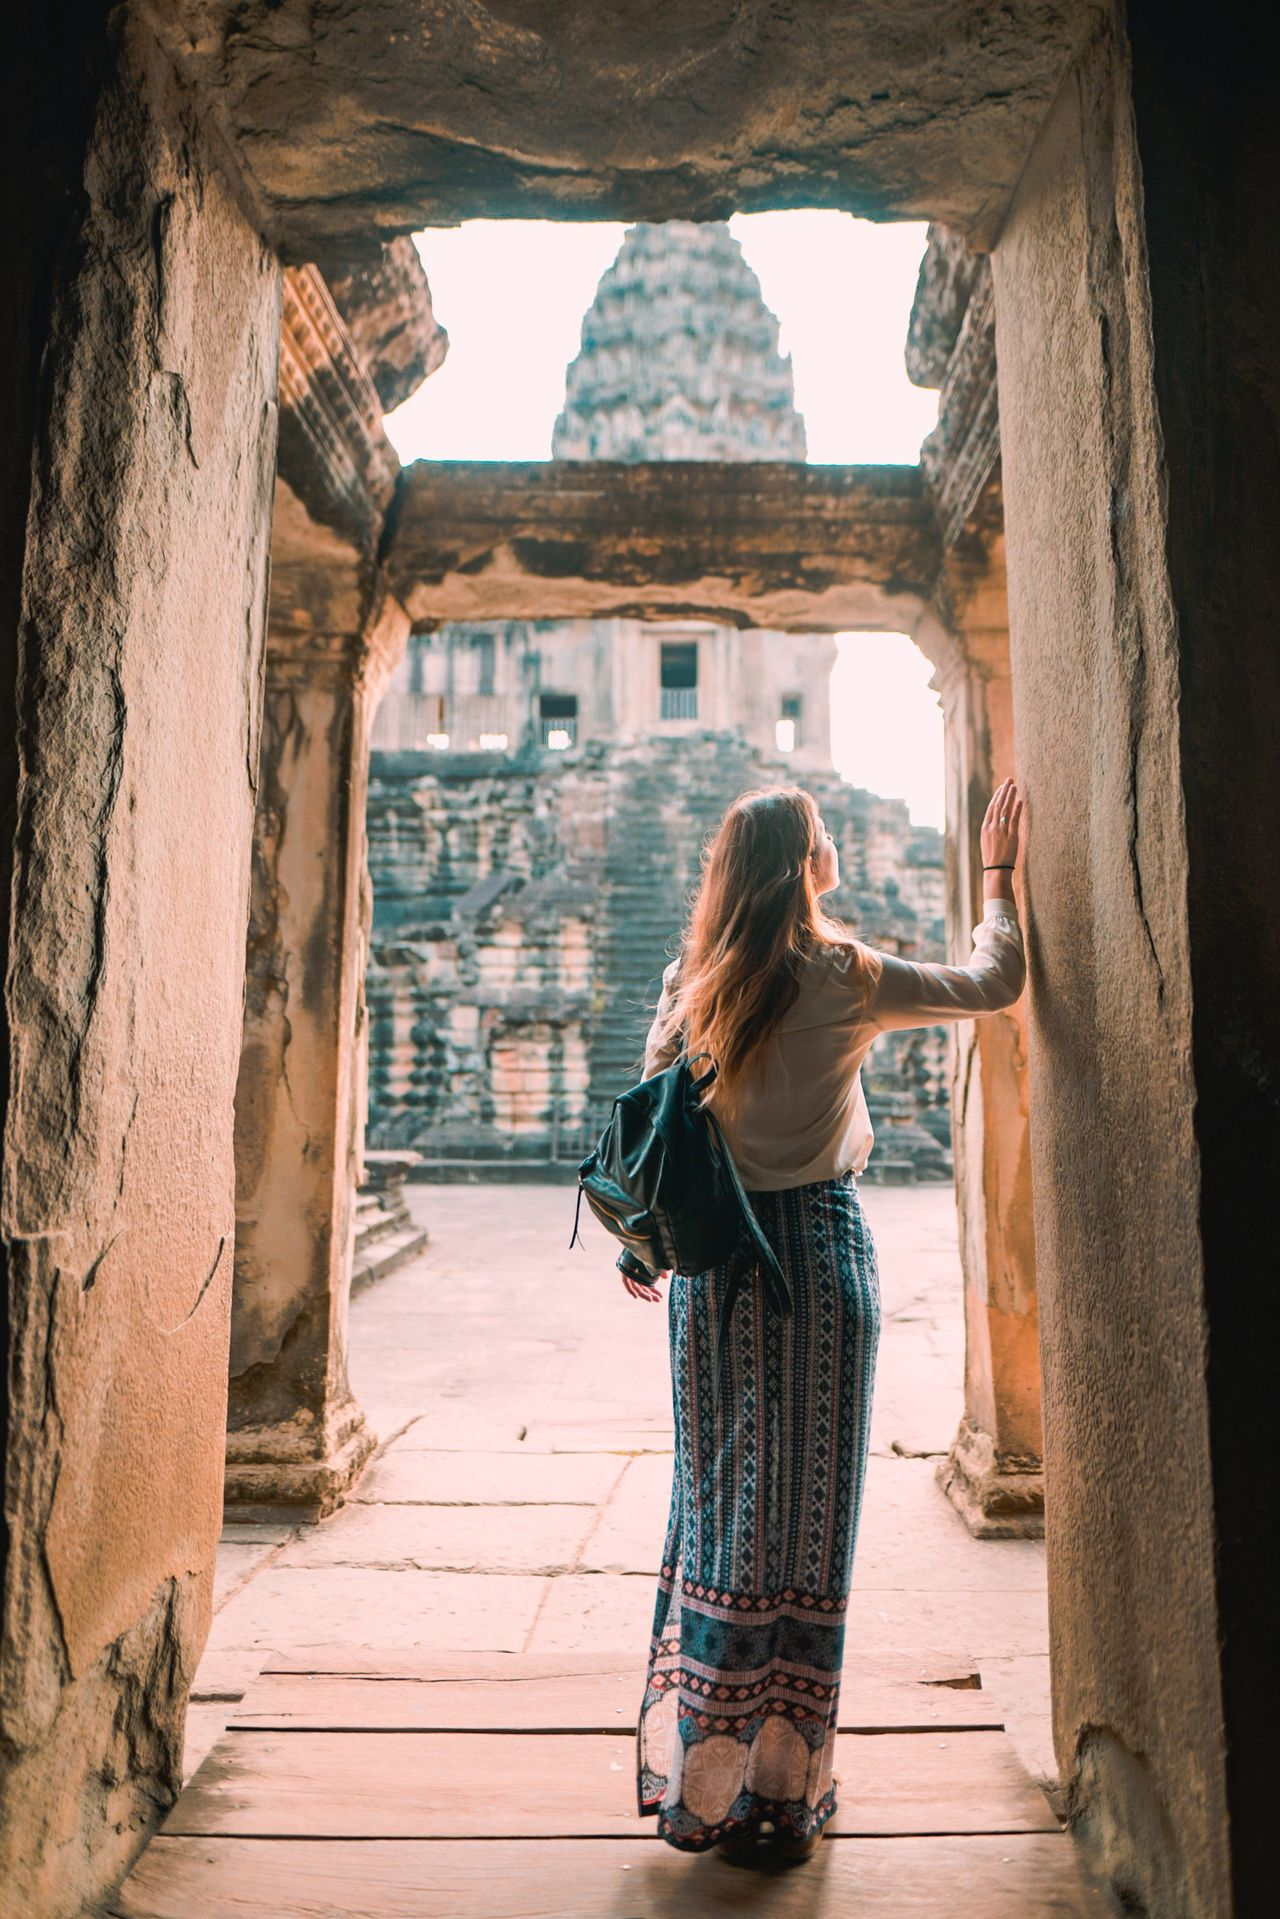 Some doors never close Architecture One Person Standing People One Woman Only Full Length Built Structure Doorway Ancient Civilization Culture Showcase May Angkor Wat Travel Destinations History Travel Building Exterior Travel Photography ASIA Architecture Cambodia Tourism Temple Wonder Of The World The Great Outdoors - 2017 EyeEm Awards